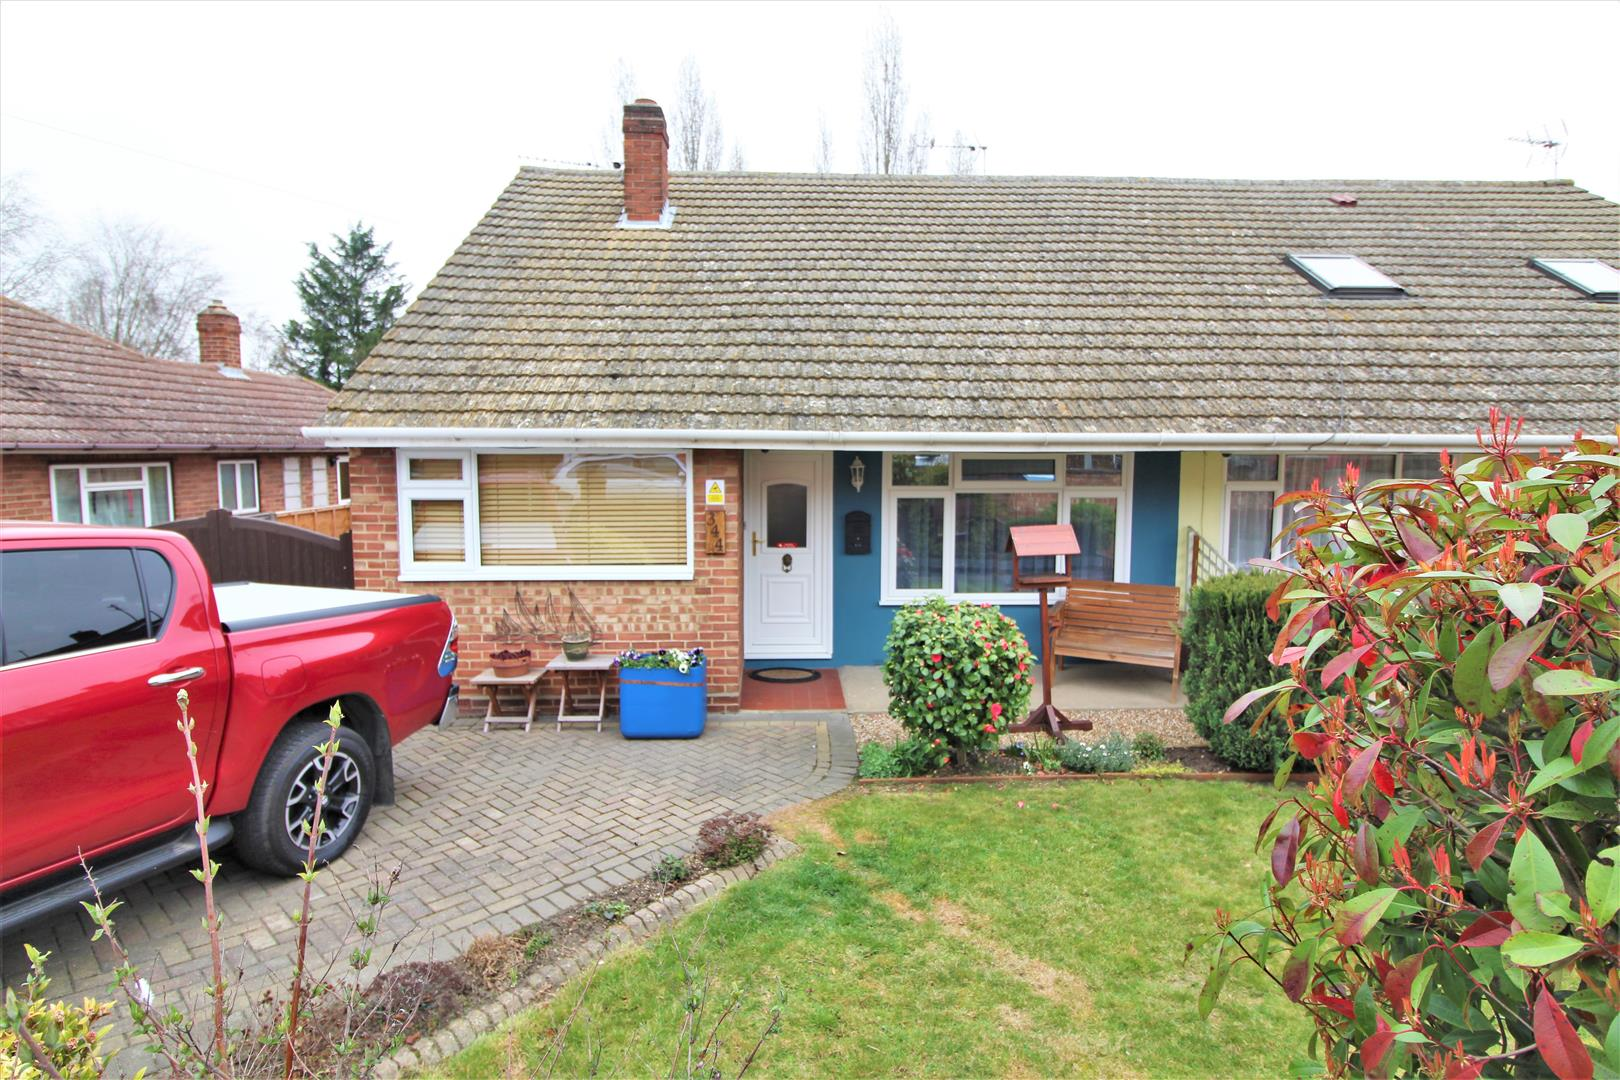 Old Heath Road, Colchester, Essex, CO2 8DD